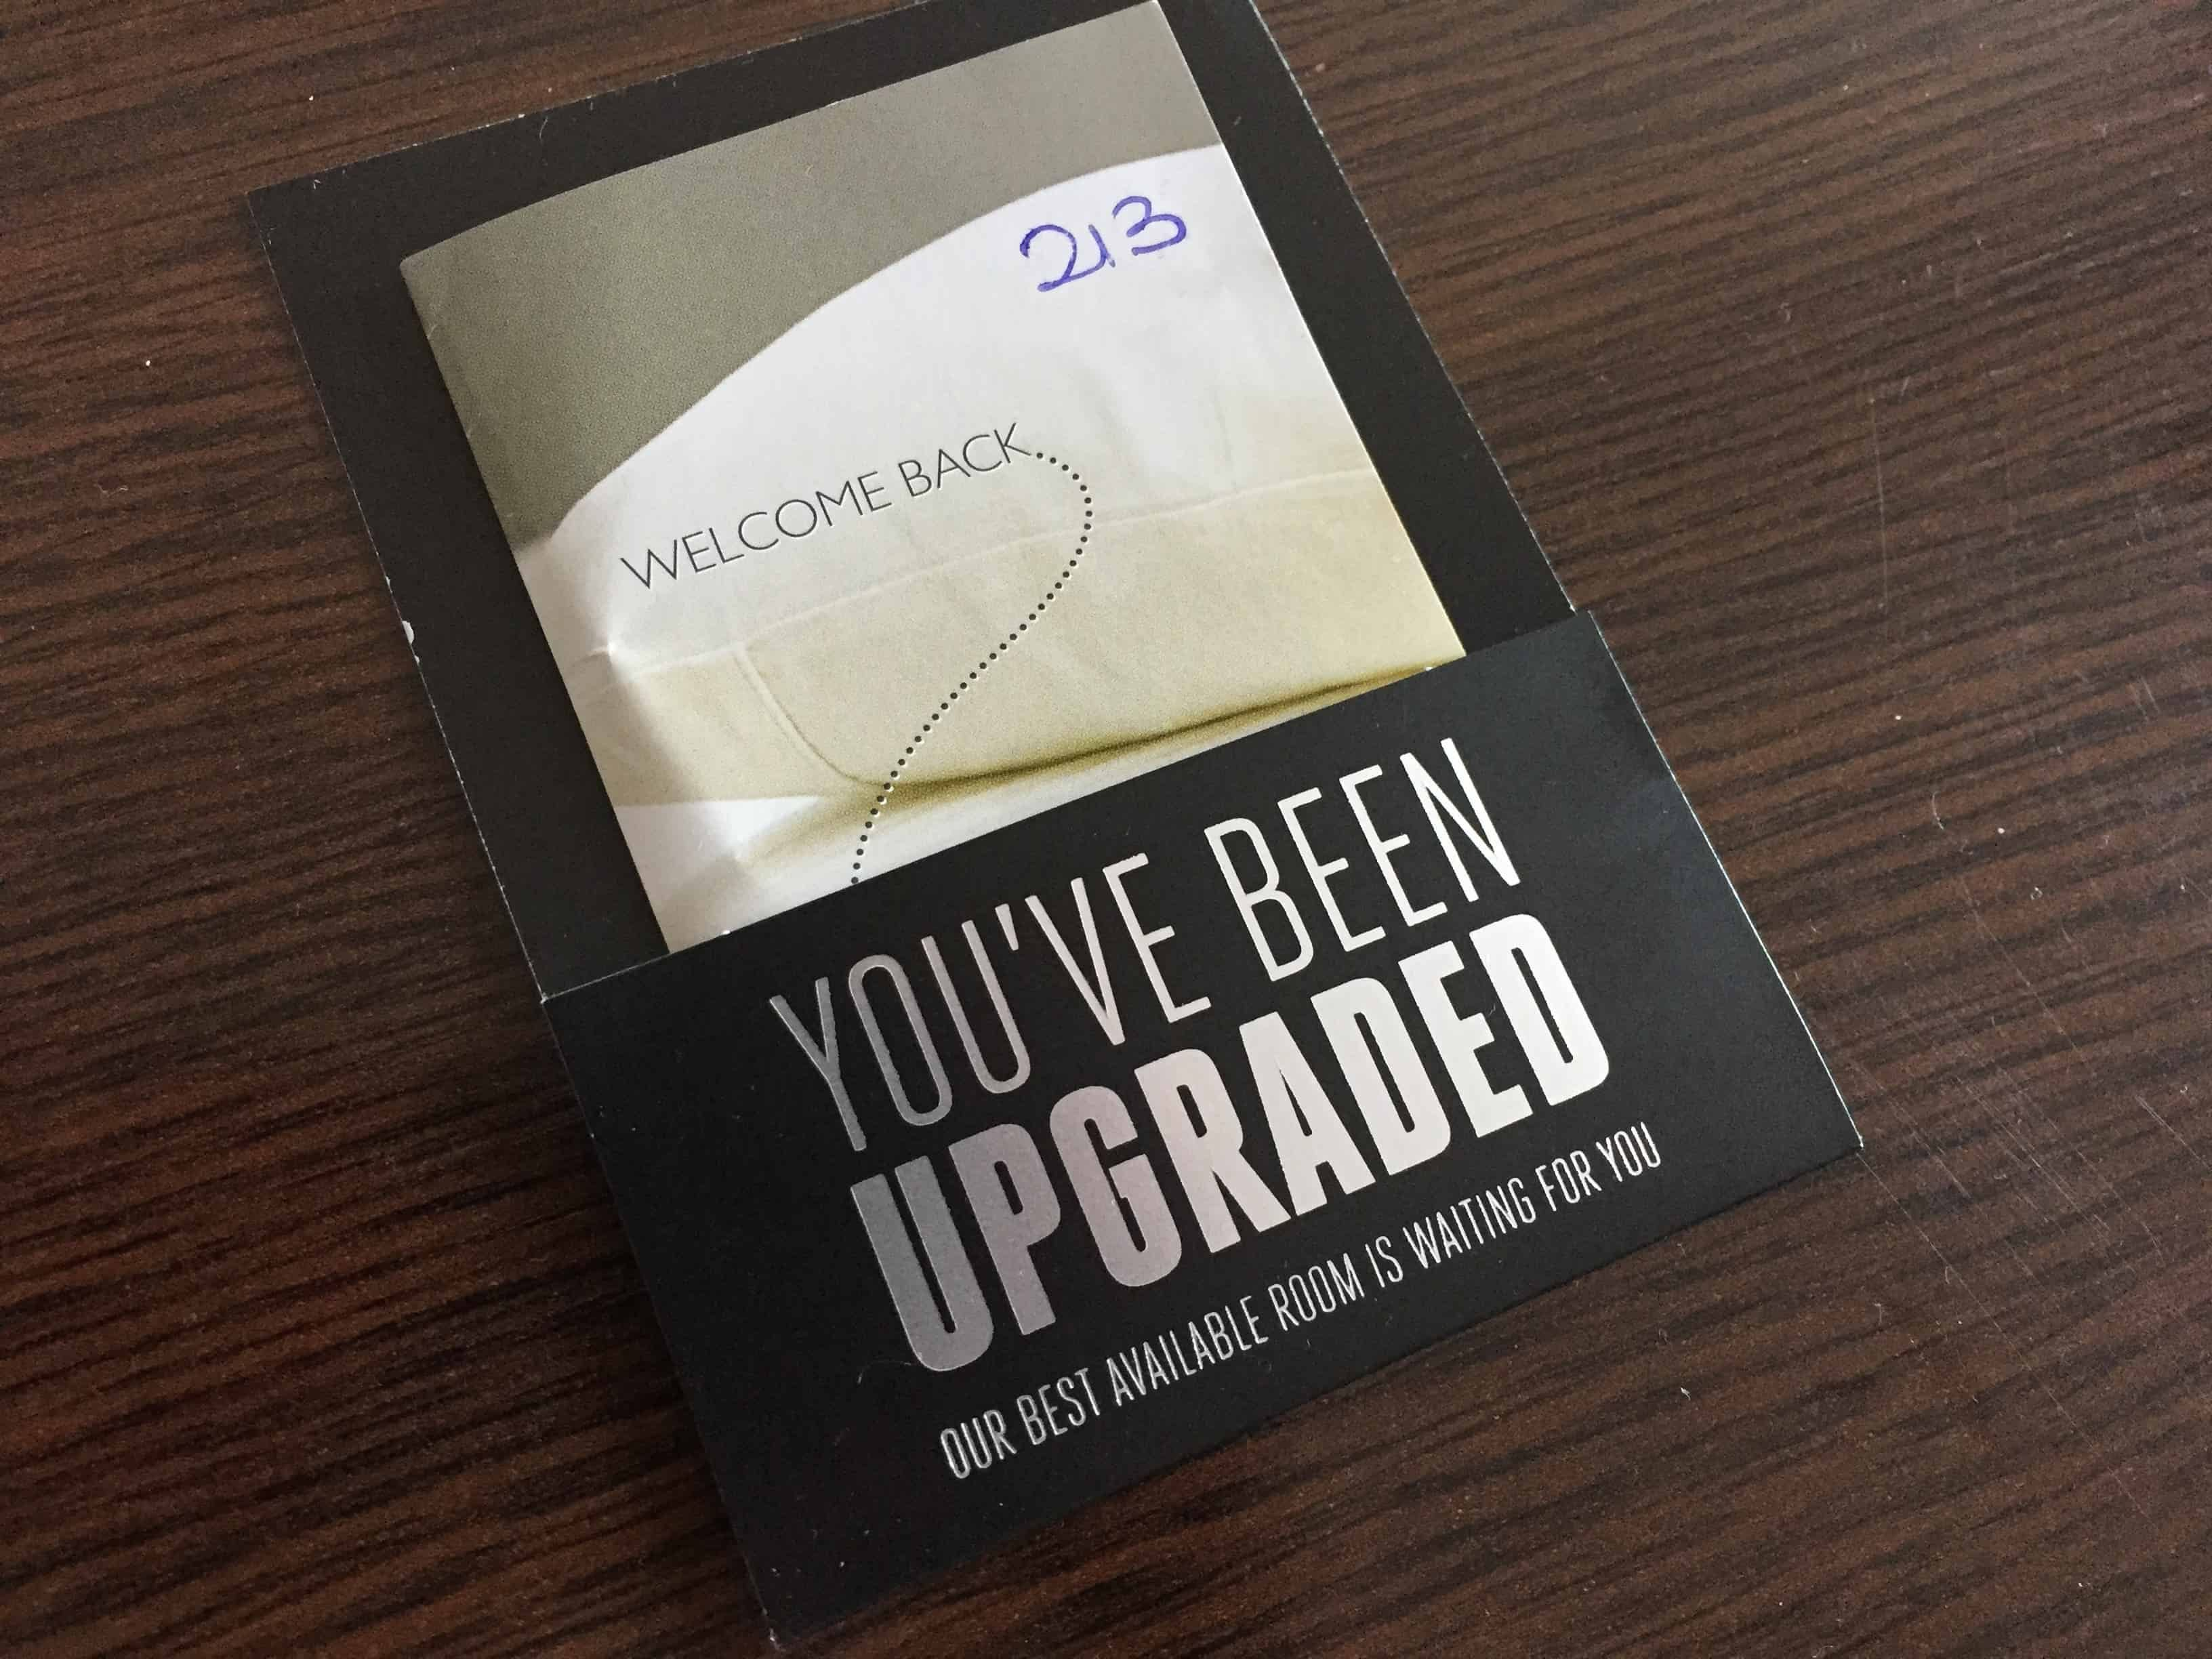 Our Marriott room keycard: we've been upgraded